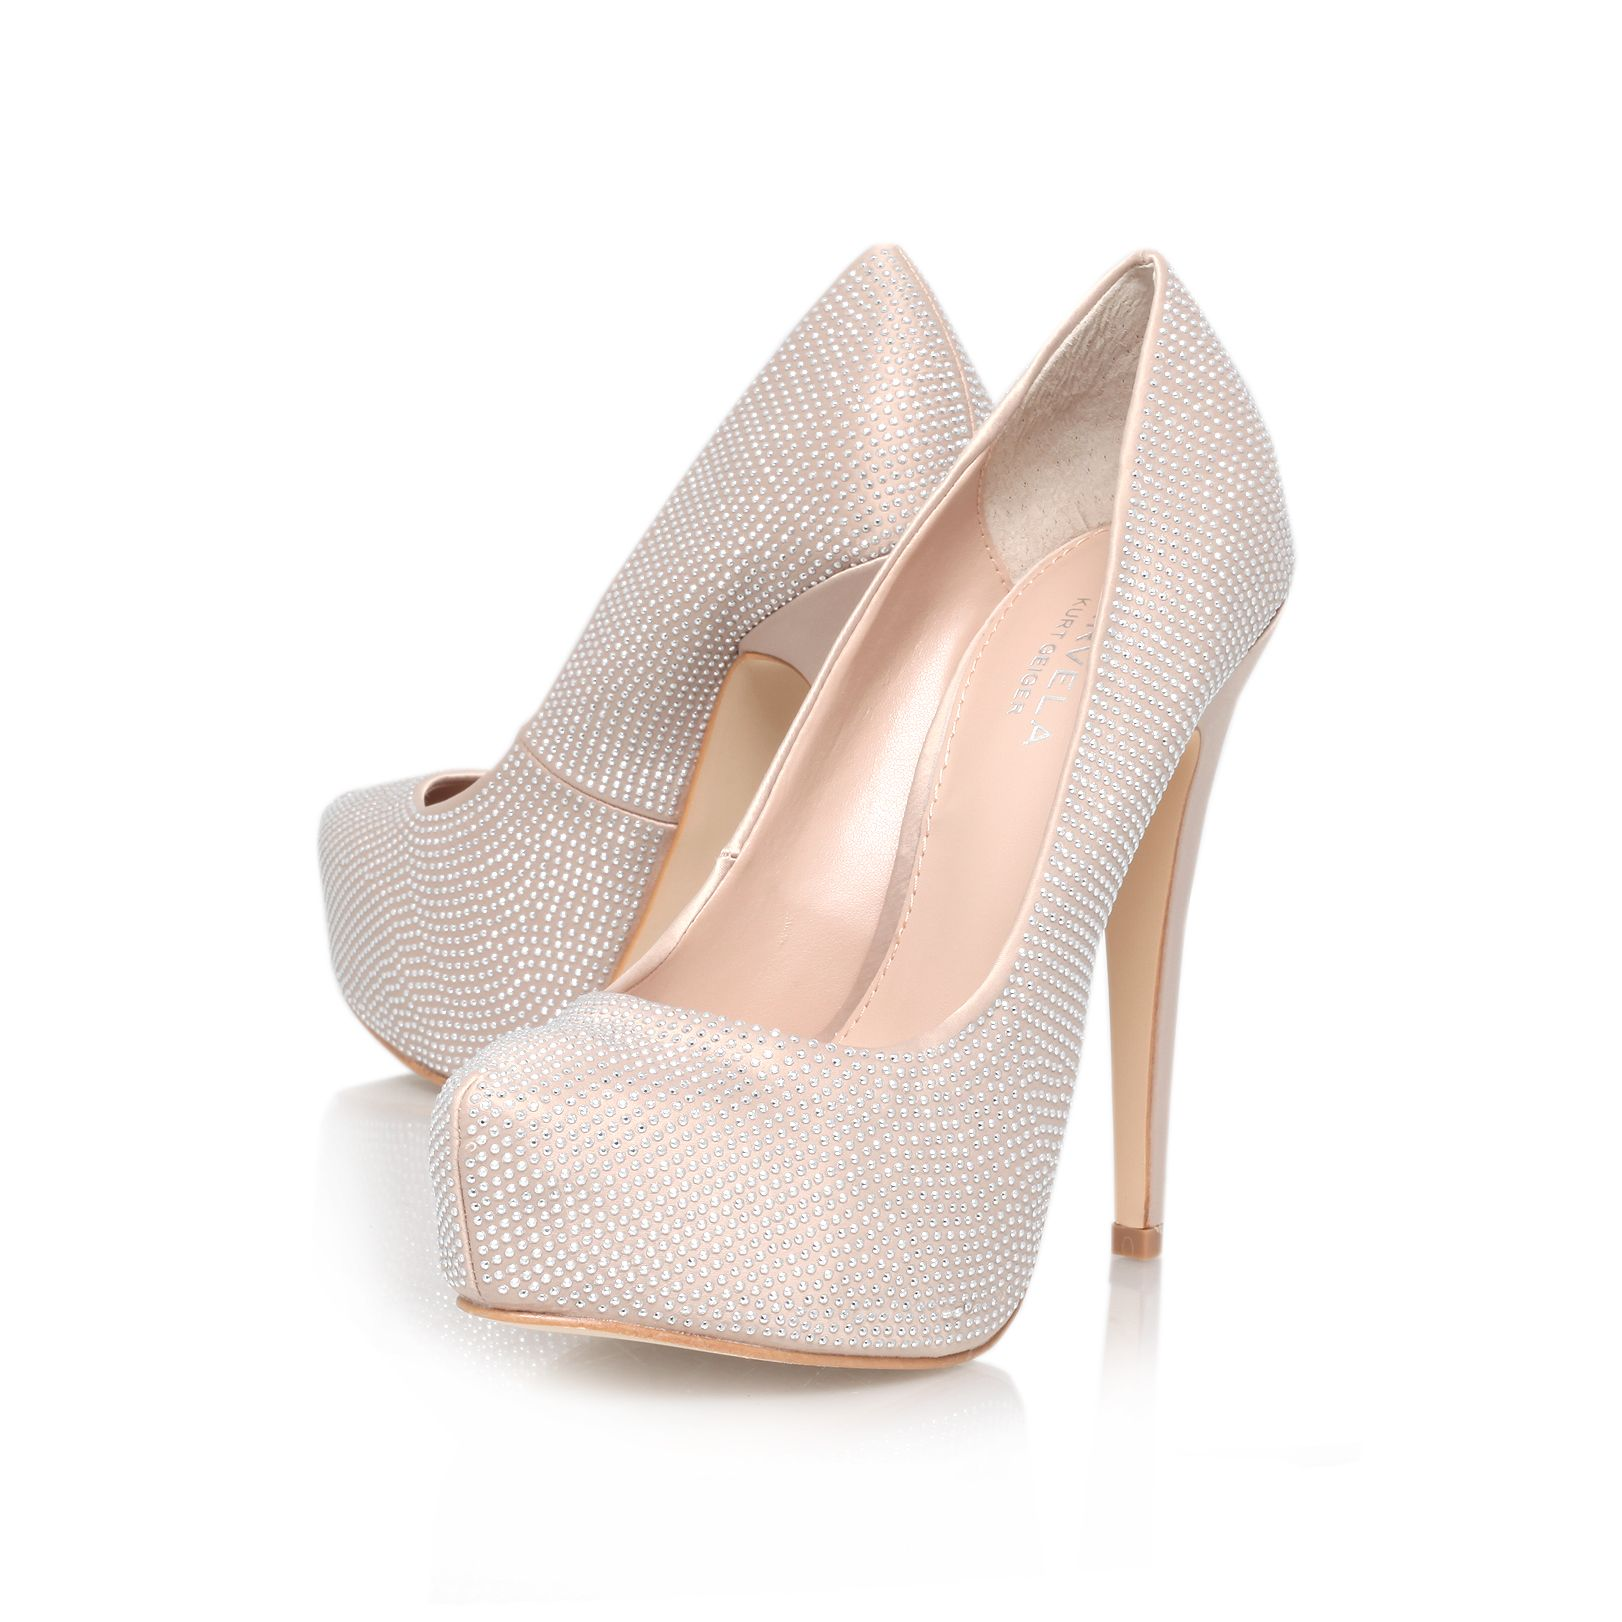 Karina high heel court shoes